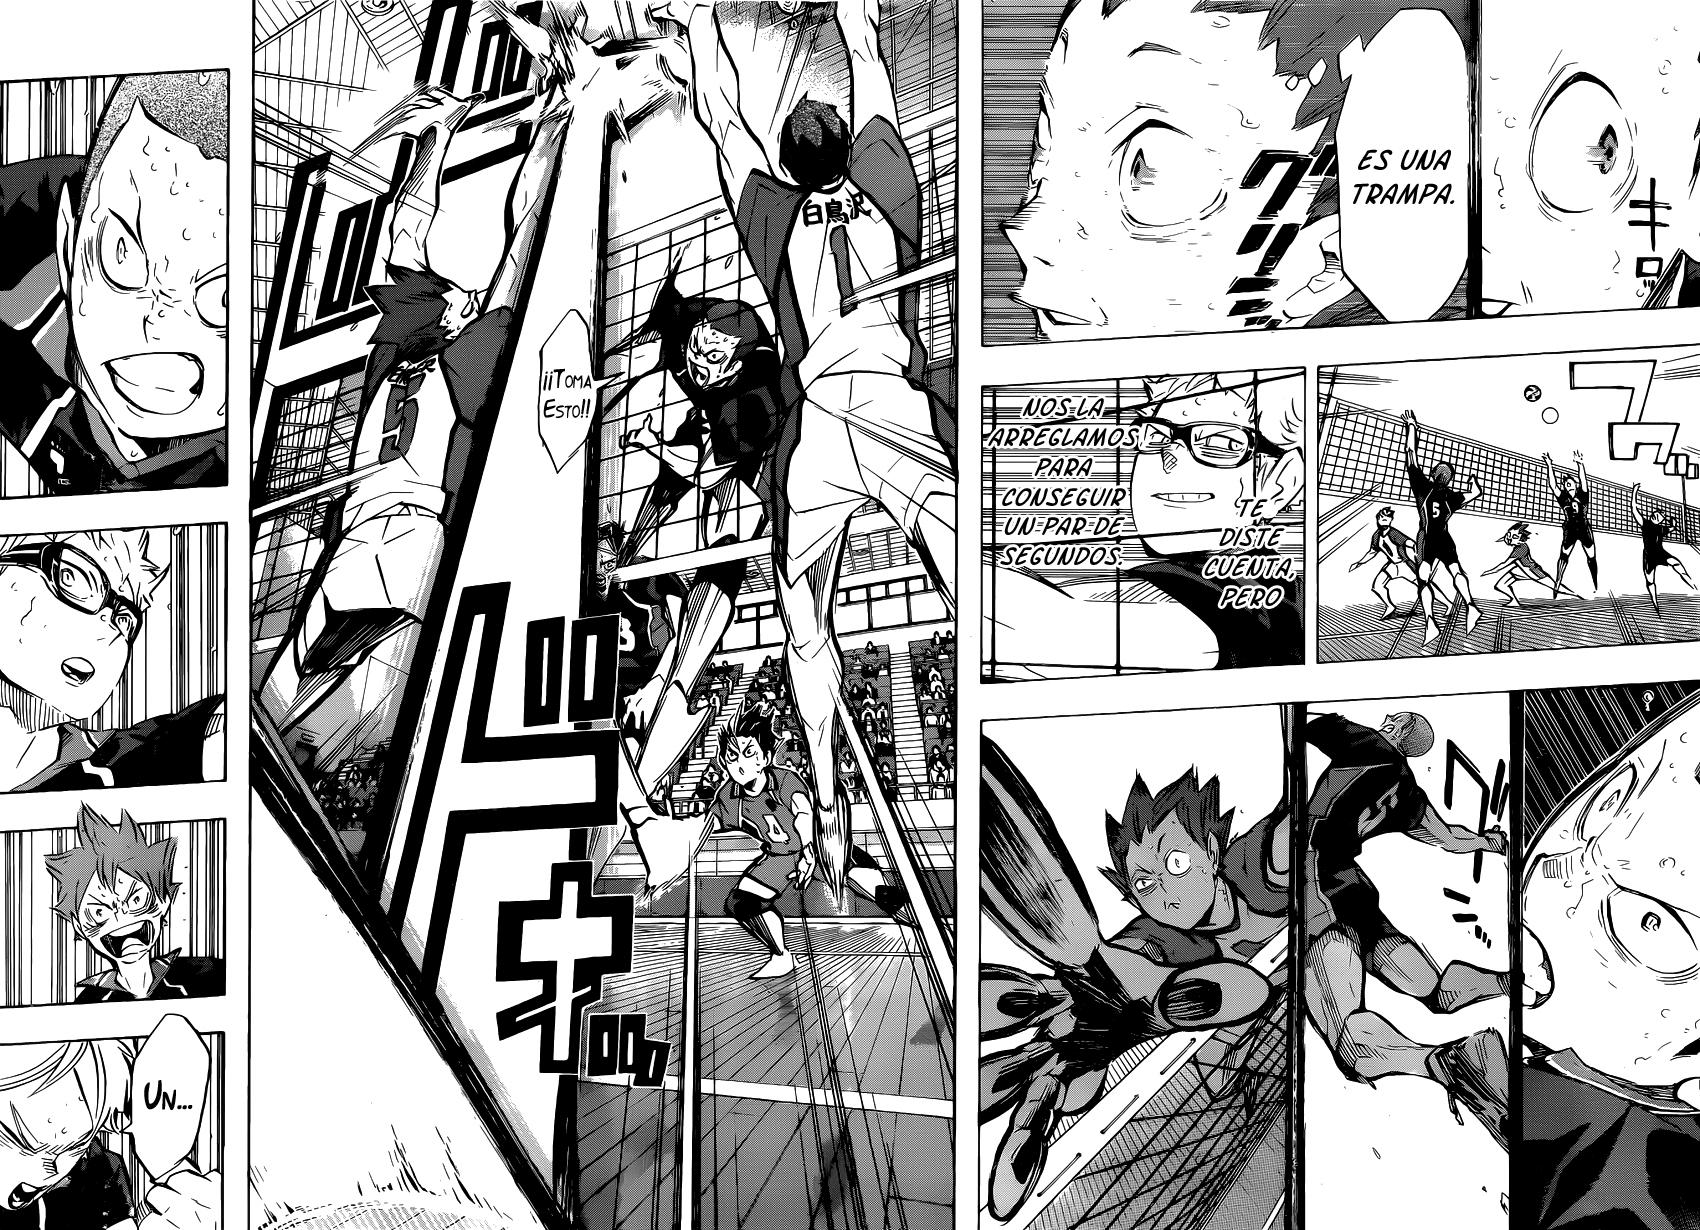 http://c5.ninemanga.com/es_manga/10/10/432478/731f9cd690d0b31e36353cb70553f541.jpg Page 10